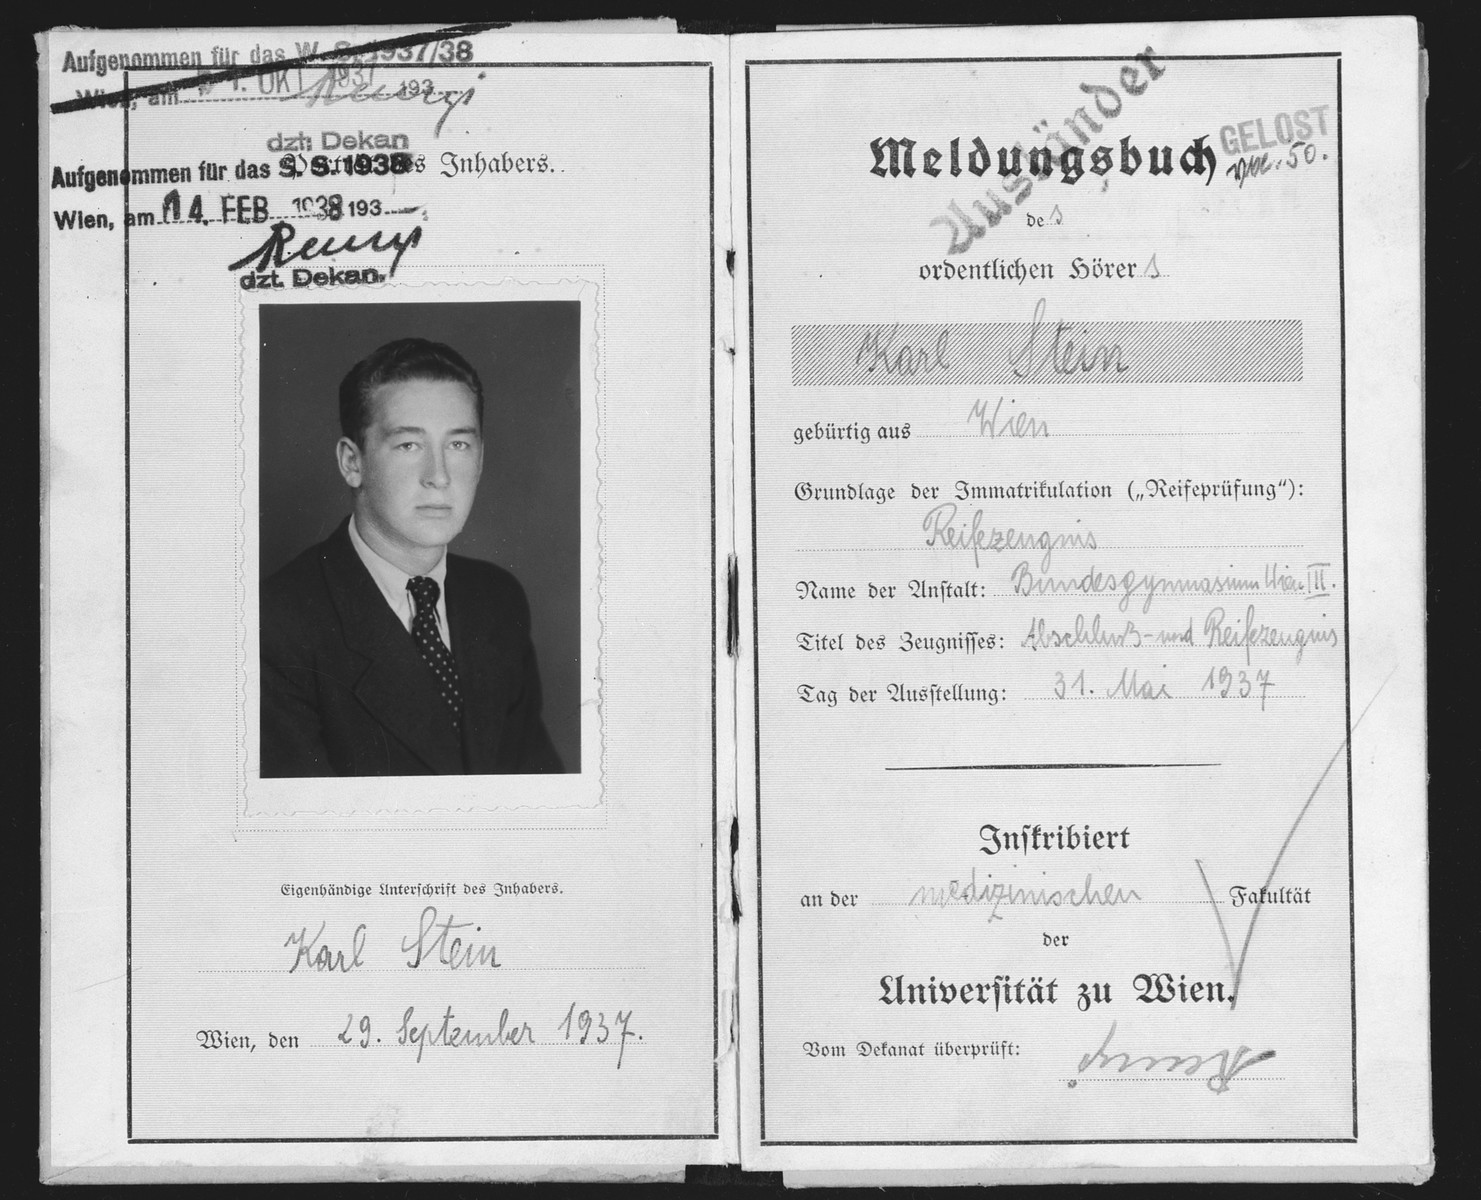 Identification card with photograph from the University of Vienna issued to a Jewish student, Karl Stein.  One month after it was stamped, the card was revoked because of Karl's Jewish heritage.